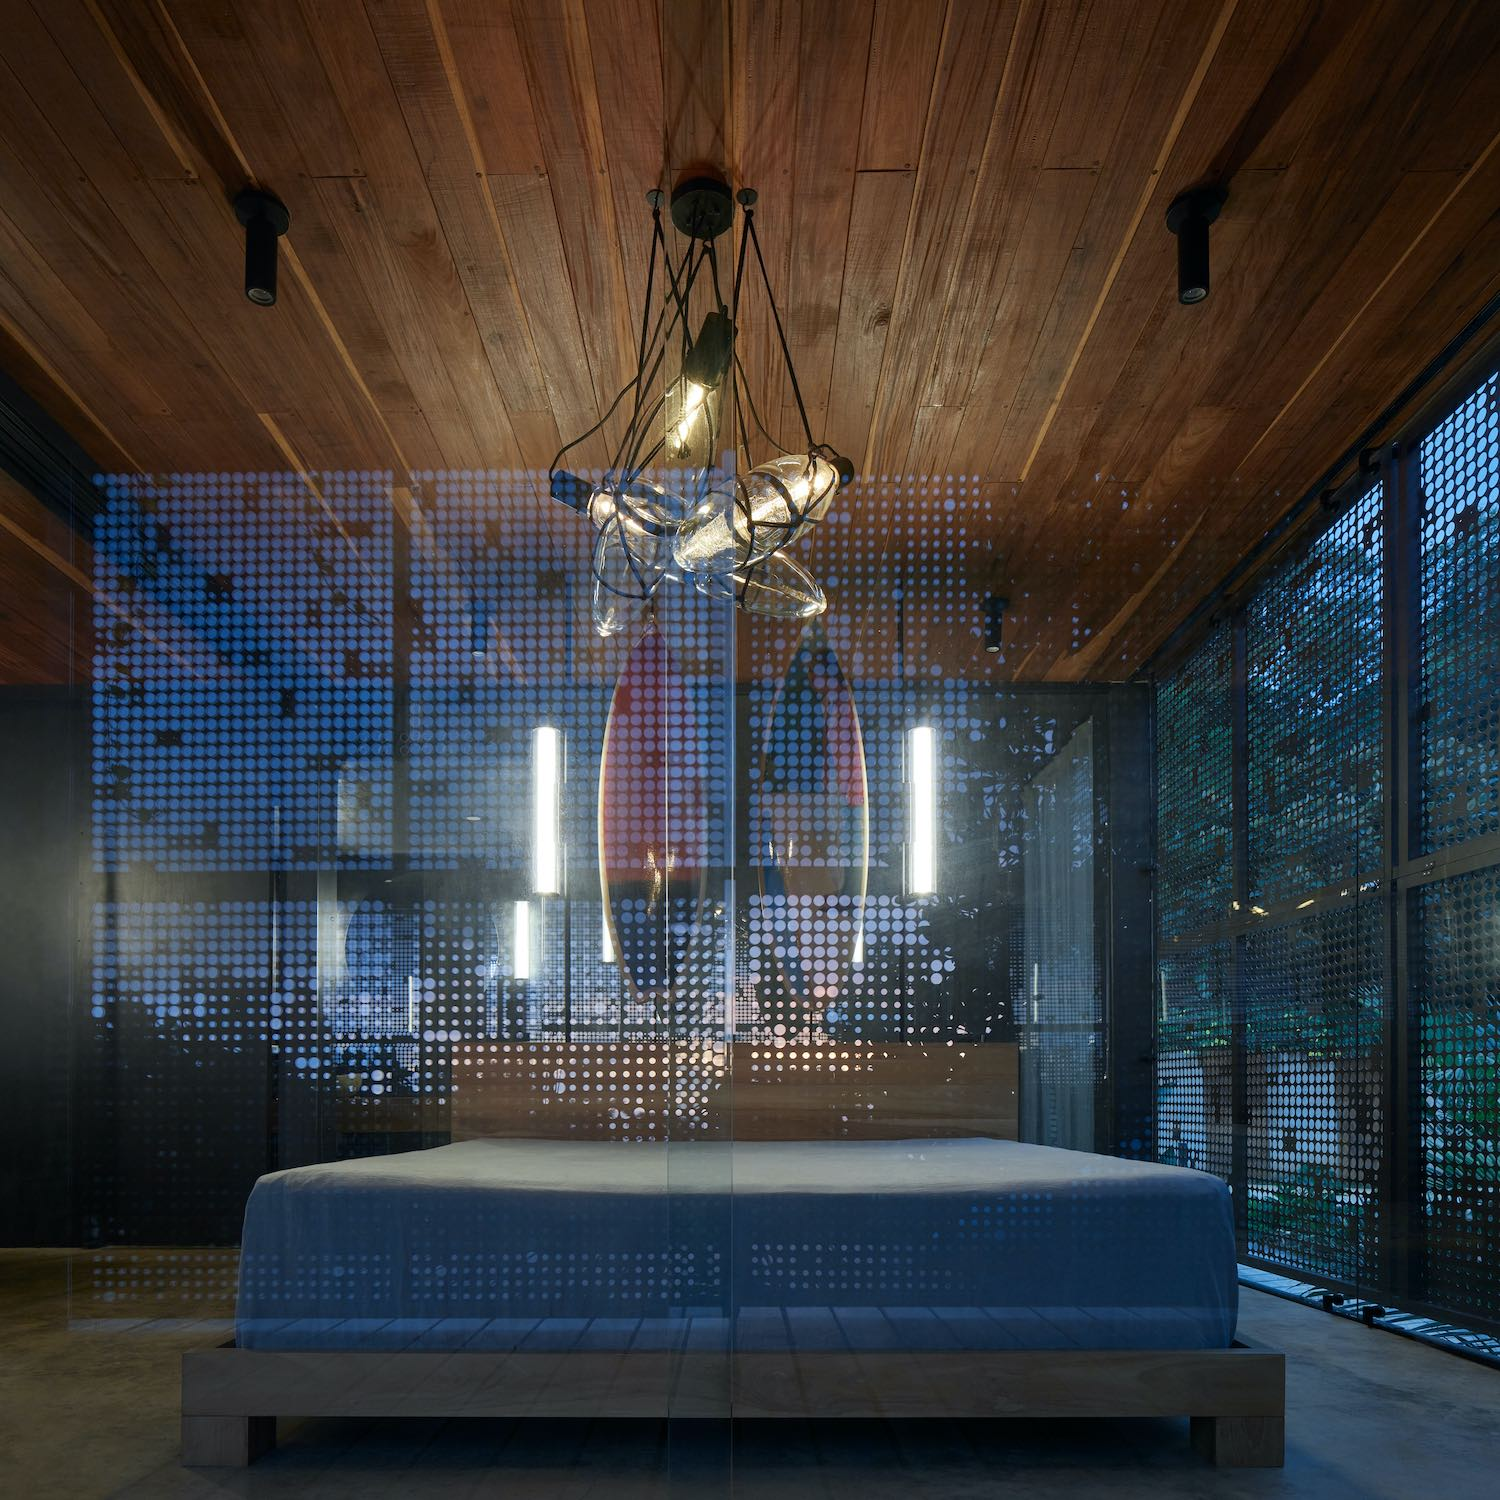 bedroom at night with illumination can be seen through glass walls